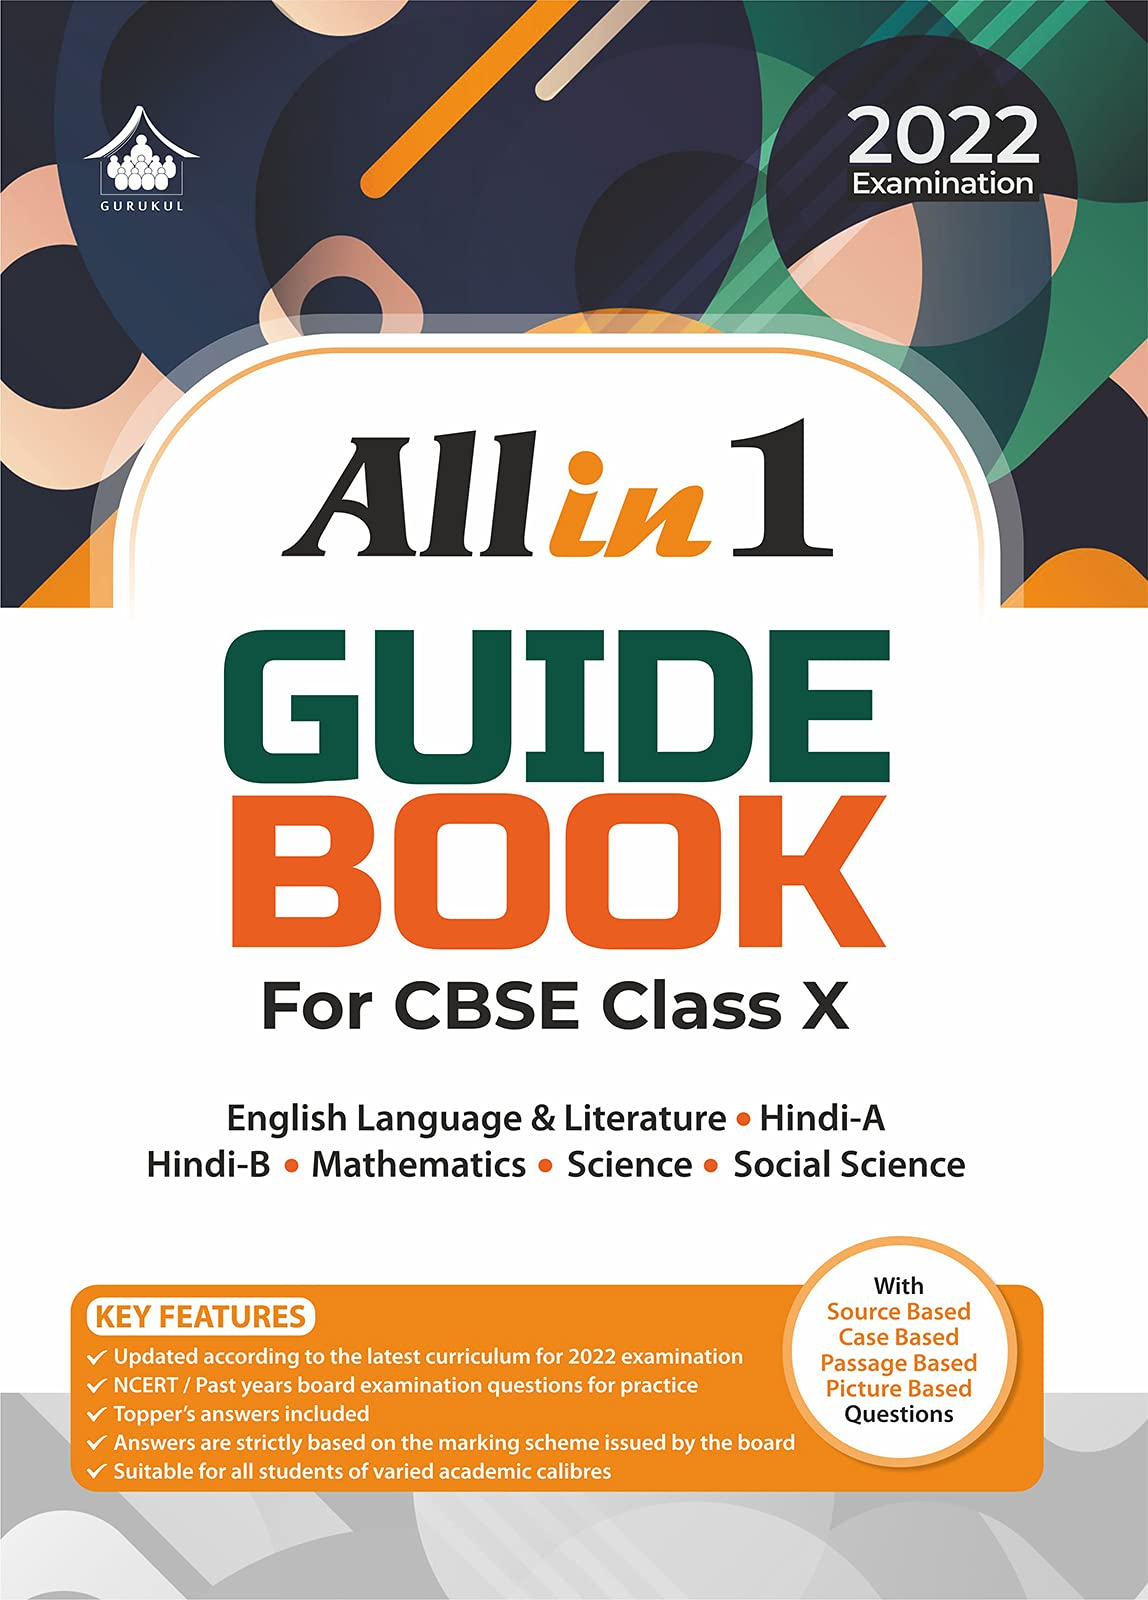 All in 1 Guide Book: CBSE Class X for 2022 Examination Paperback – 15 April 2021